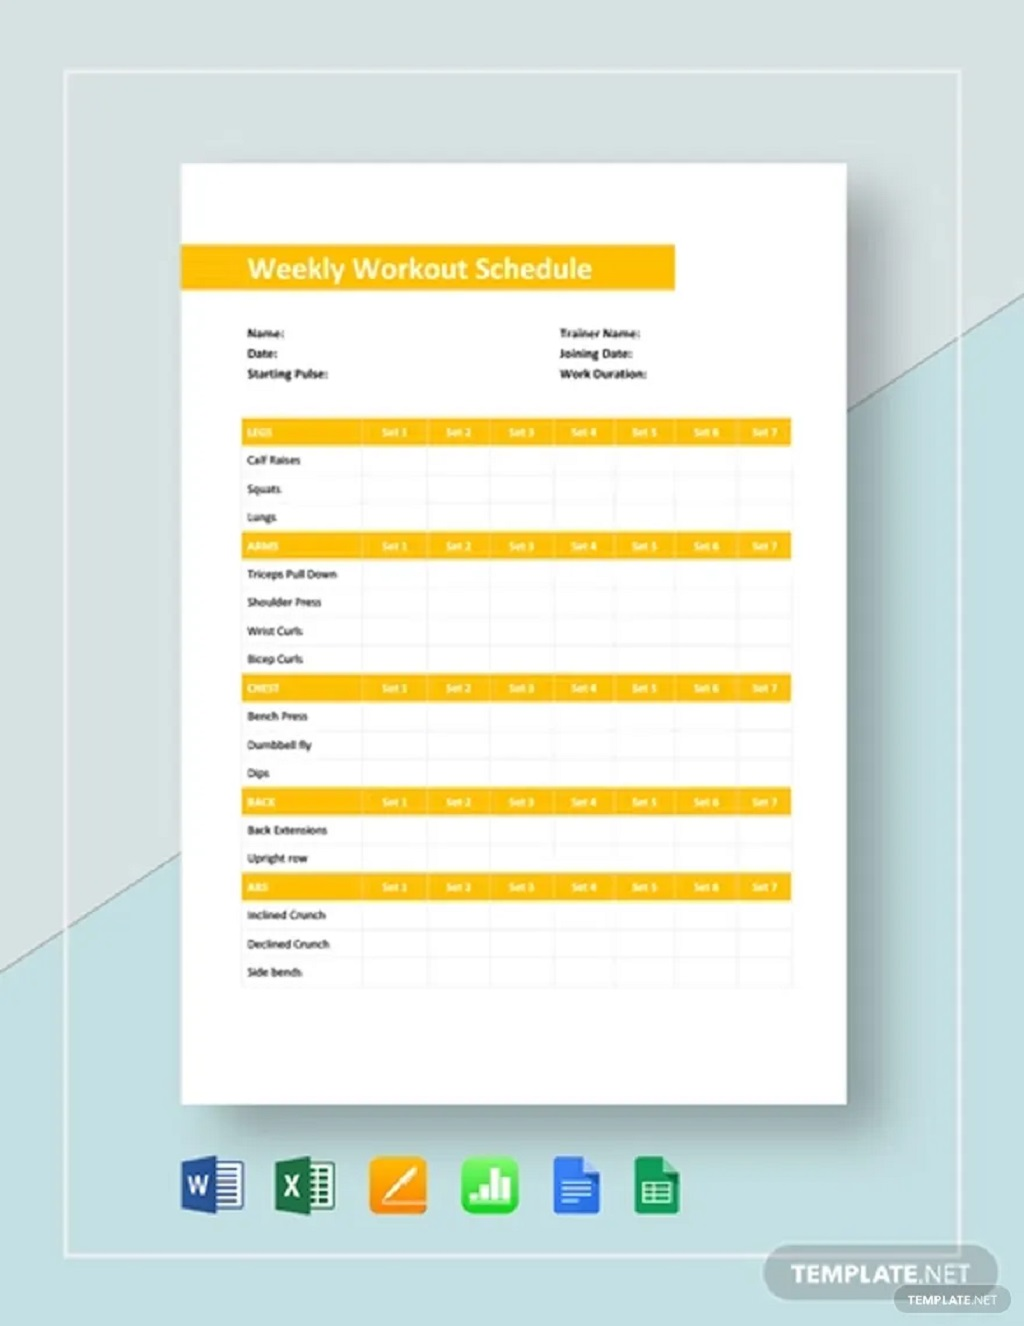 Weekly Workout Schedule Template Sample Planner Printable Google Sheets Searches Related To Excel  Samples Large